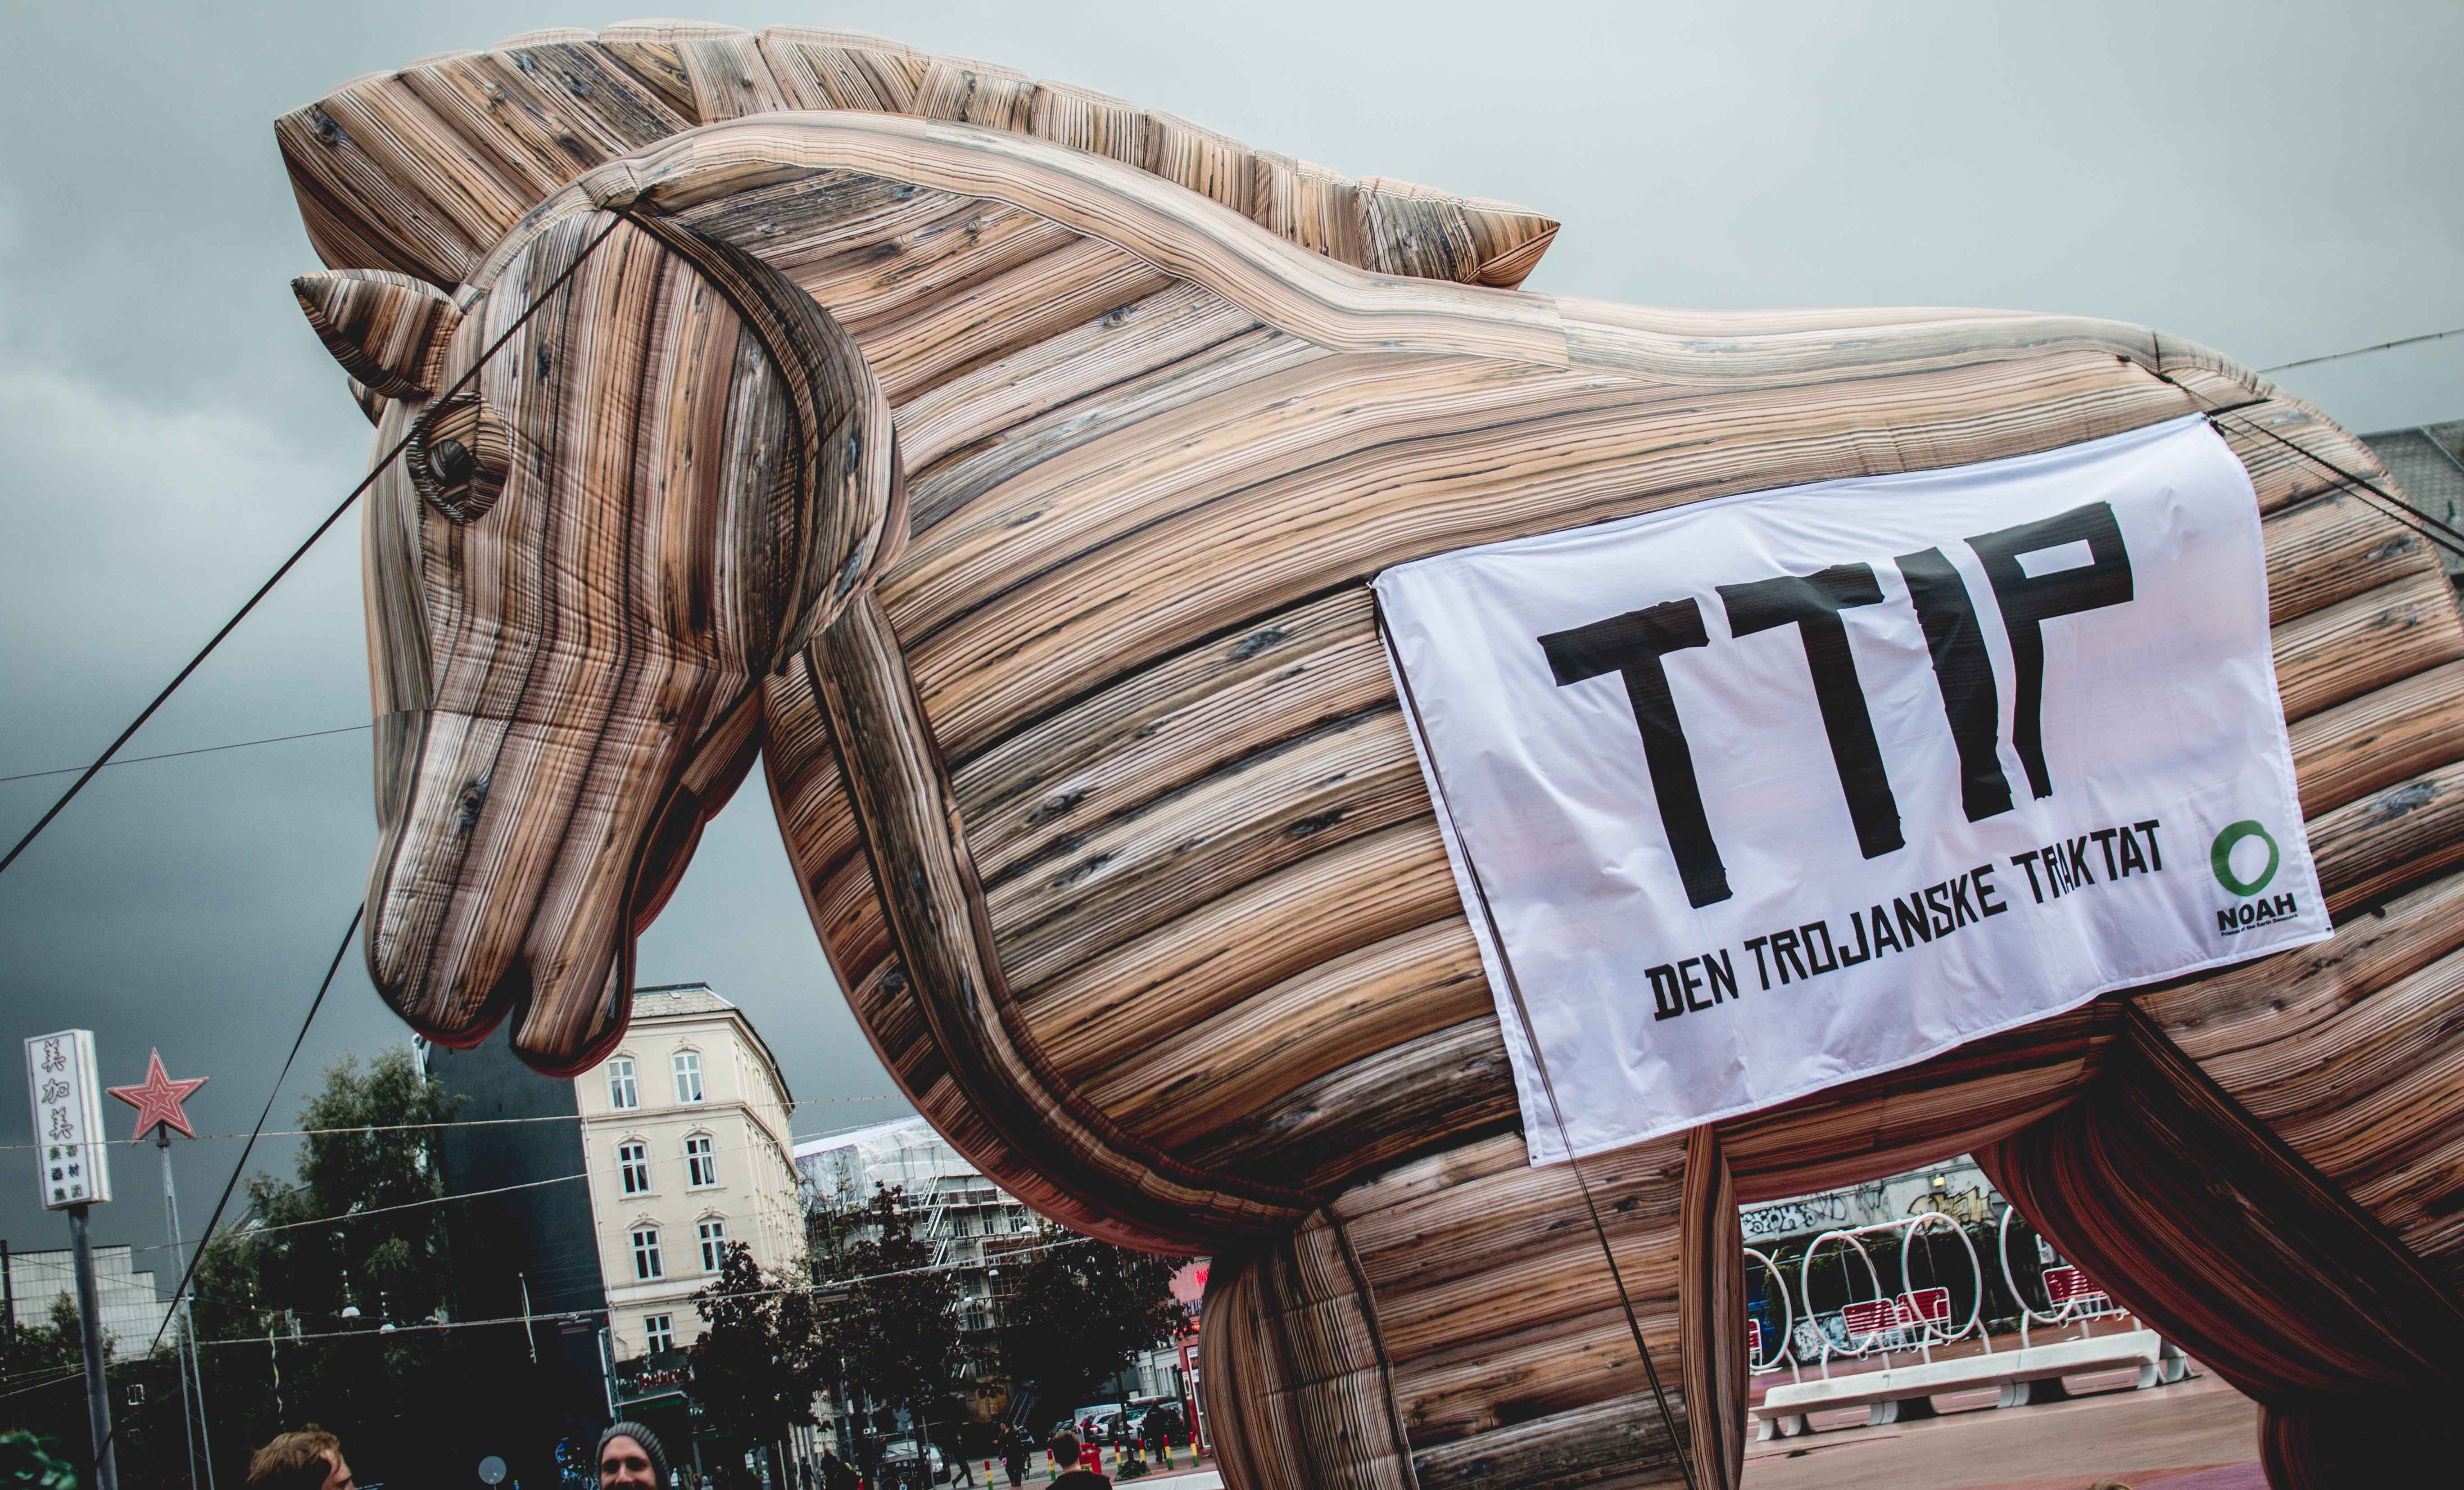 Giant Trojan horse protests against EU-US trade deal